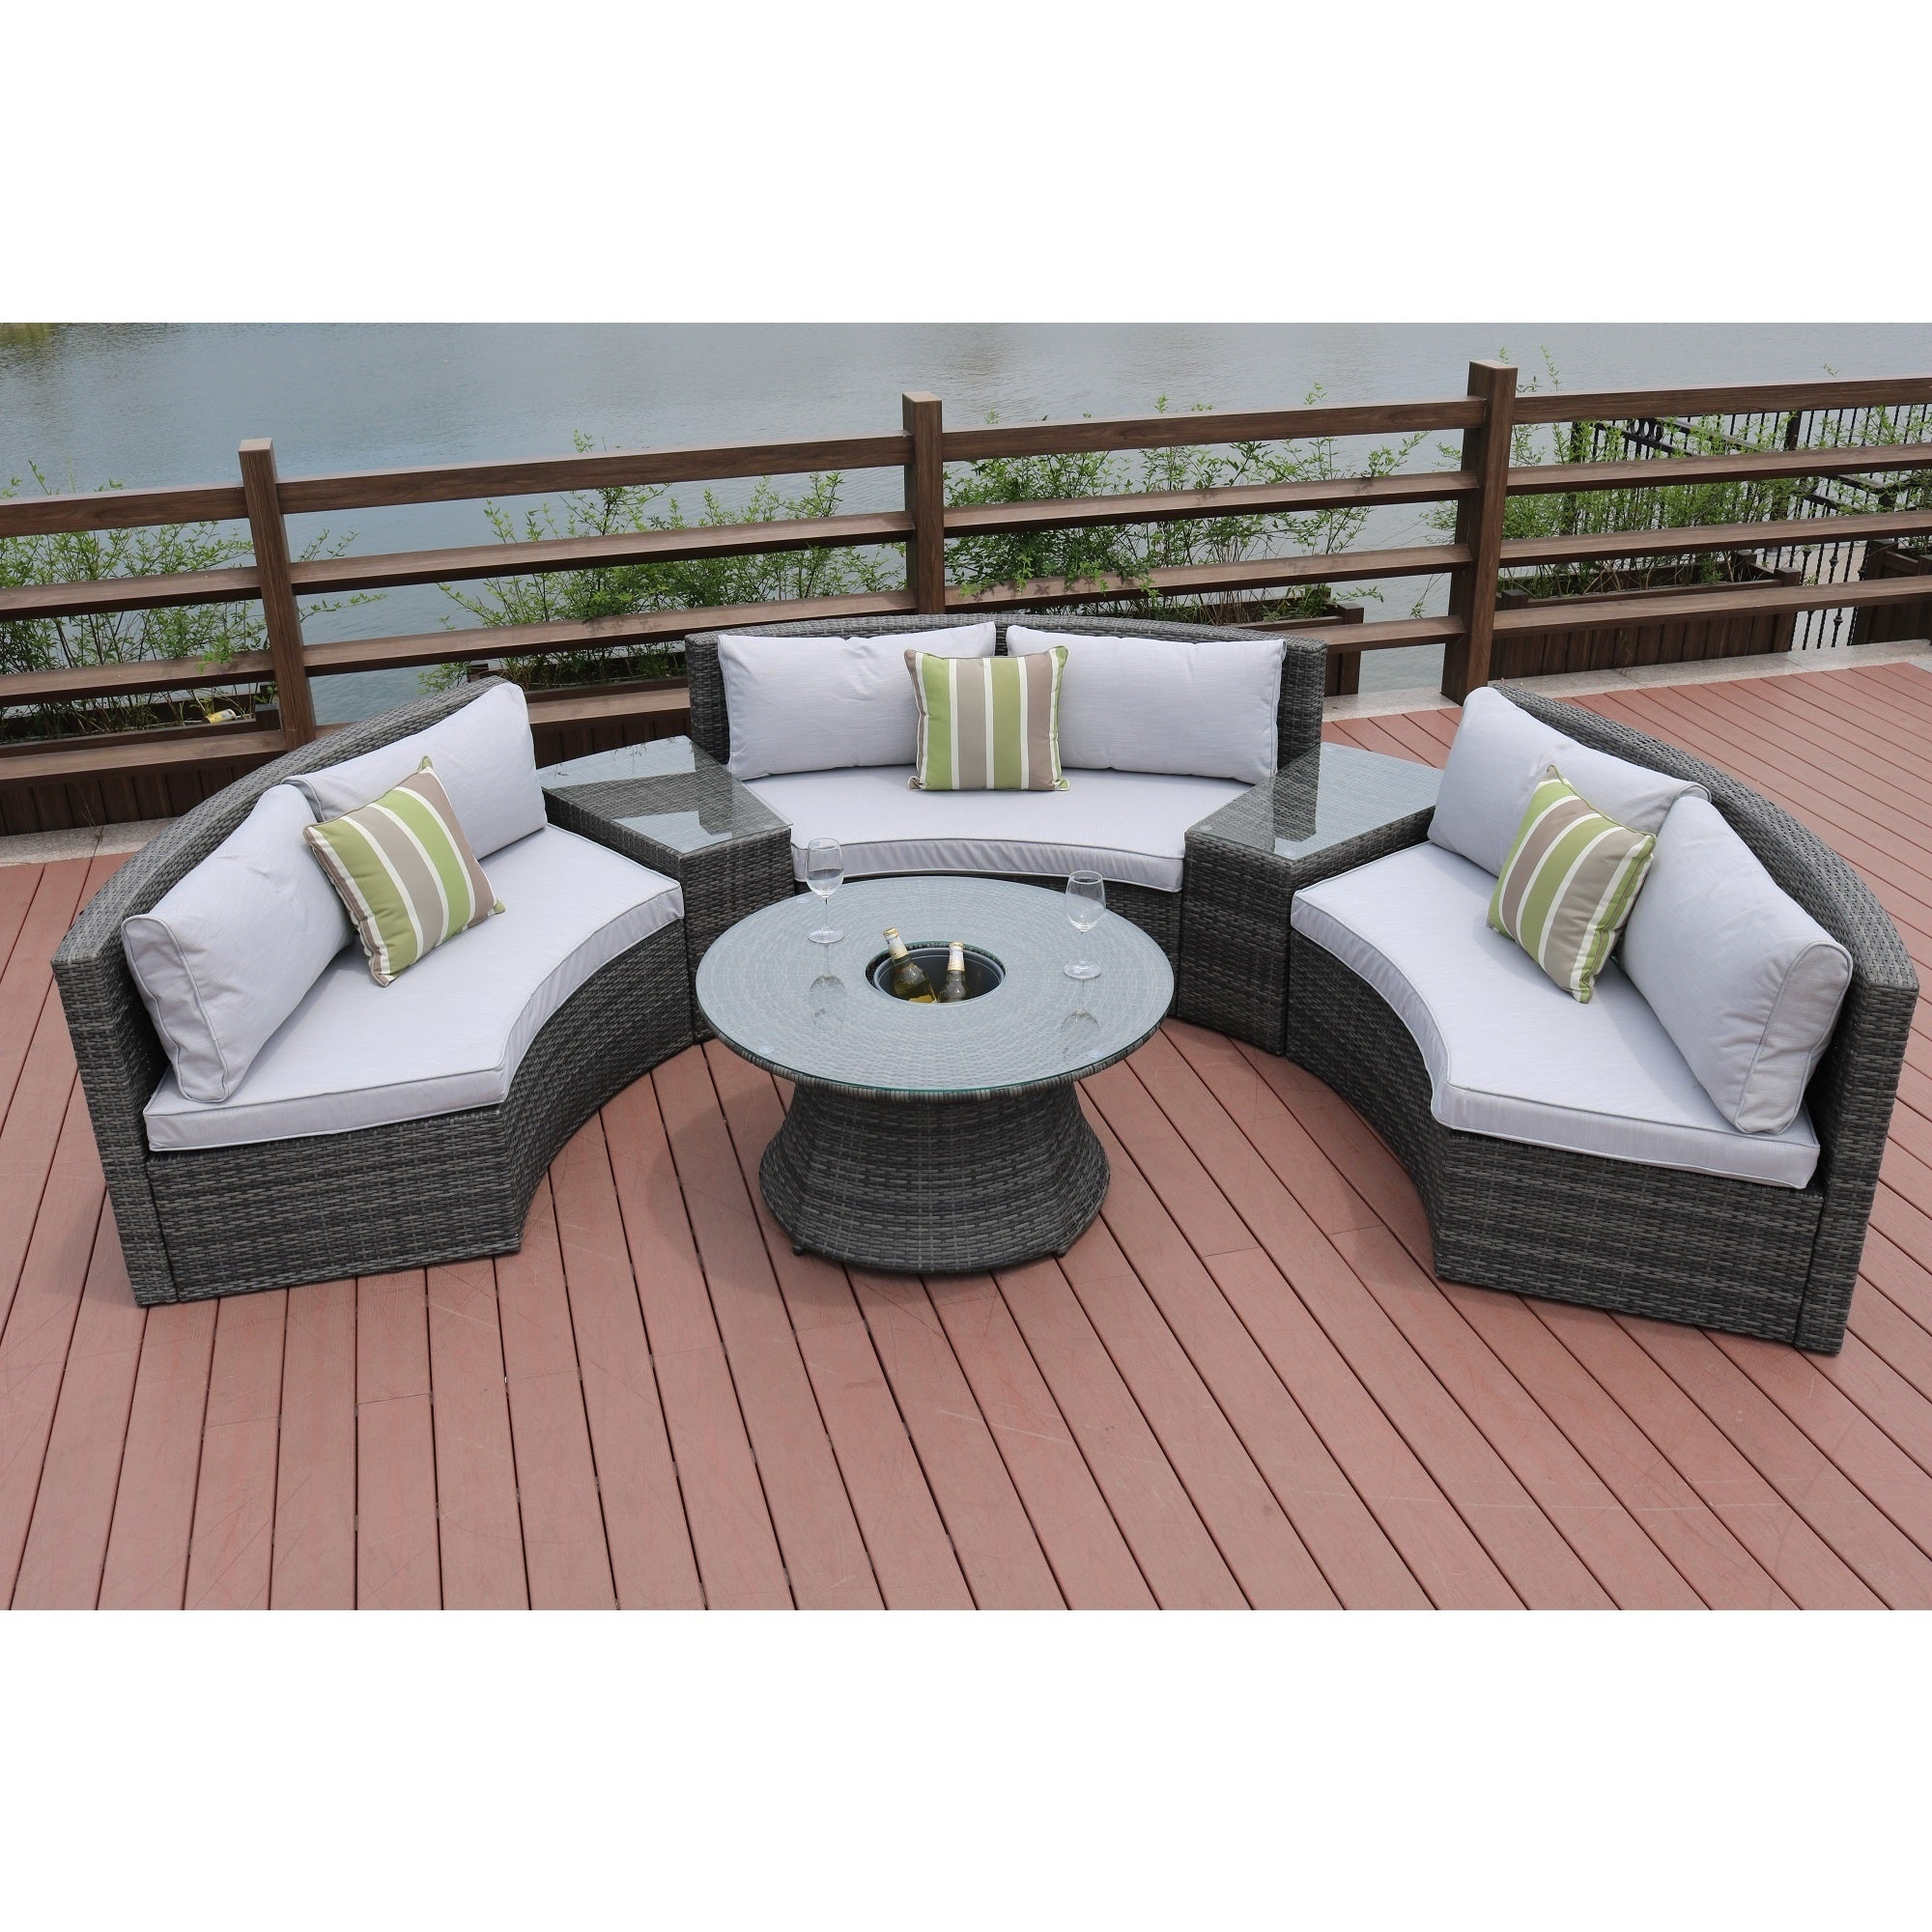 Half Moon 6 Piece Outdoor Curved Sectional Sofa With Side Table Set By Direct Wicker Free Shipping Today 16899729